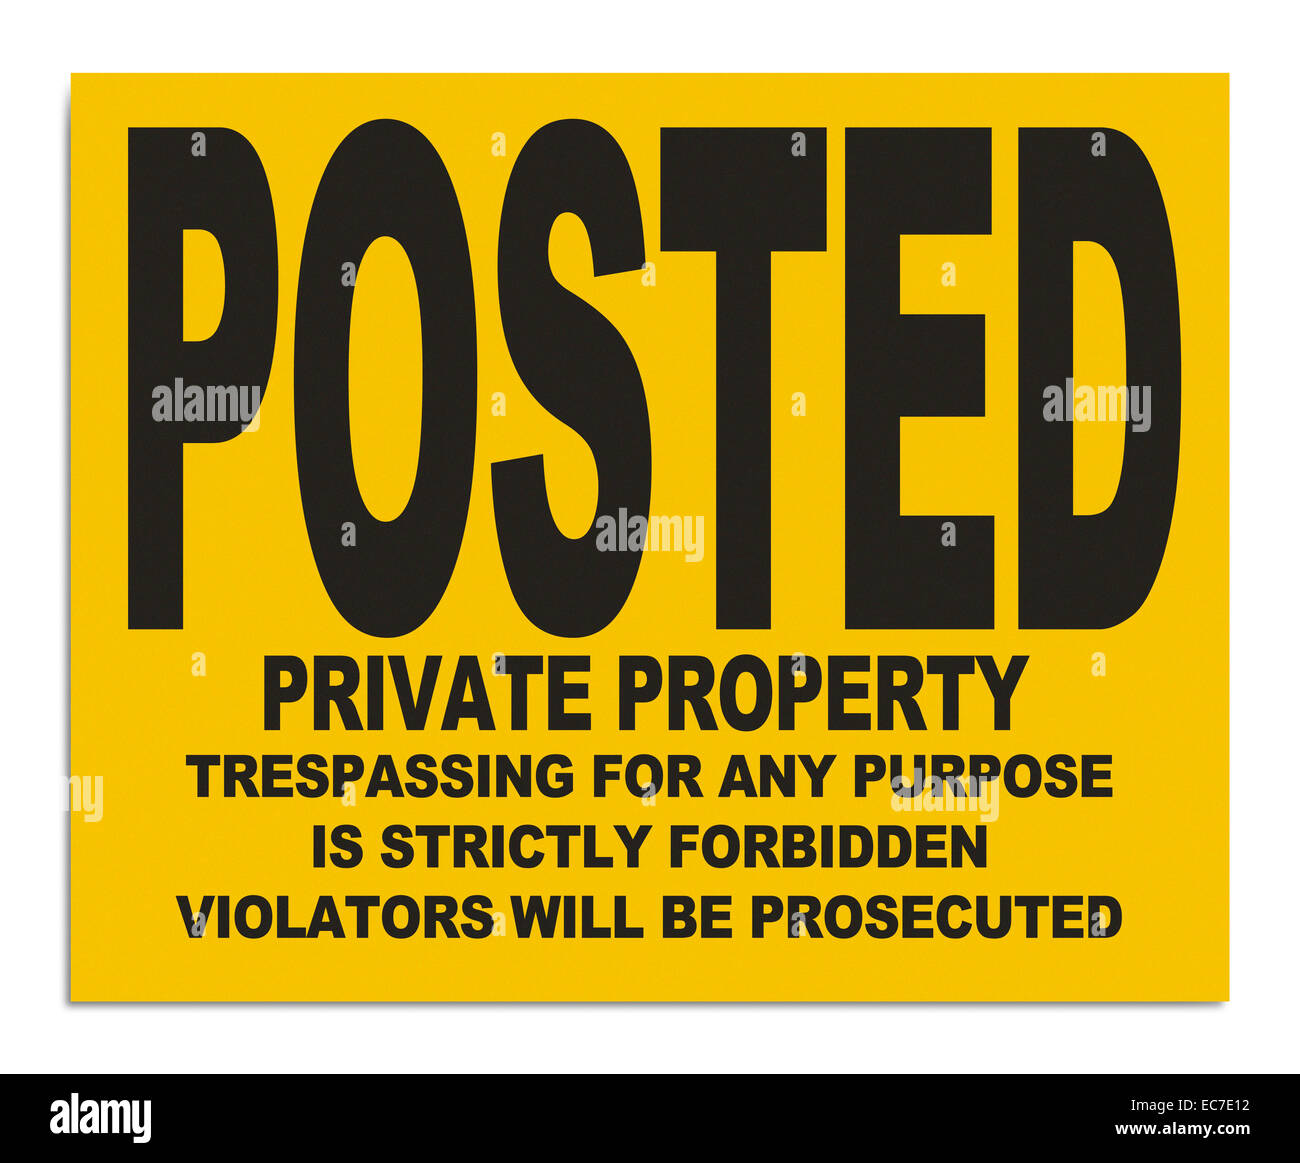 Yellow Plastic Posted Private Property Sign Isolated on White Backgroud. - Stock Image